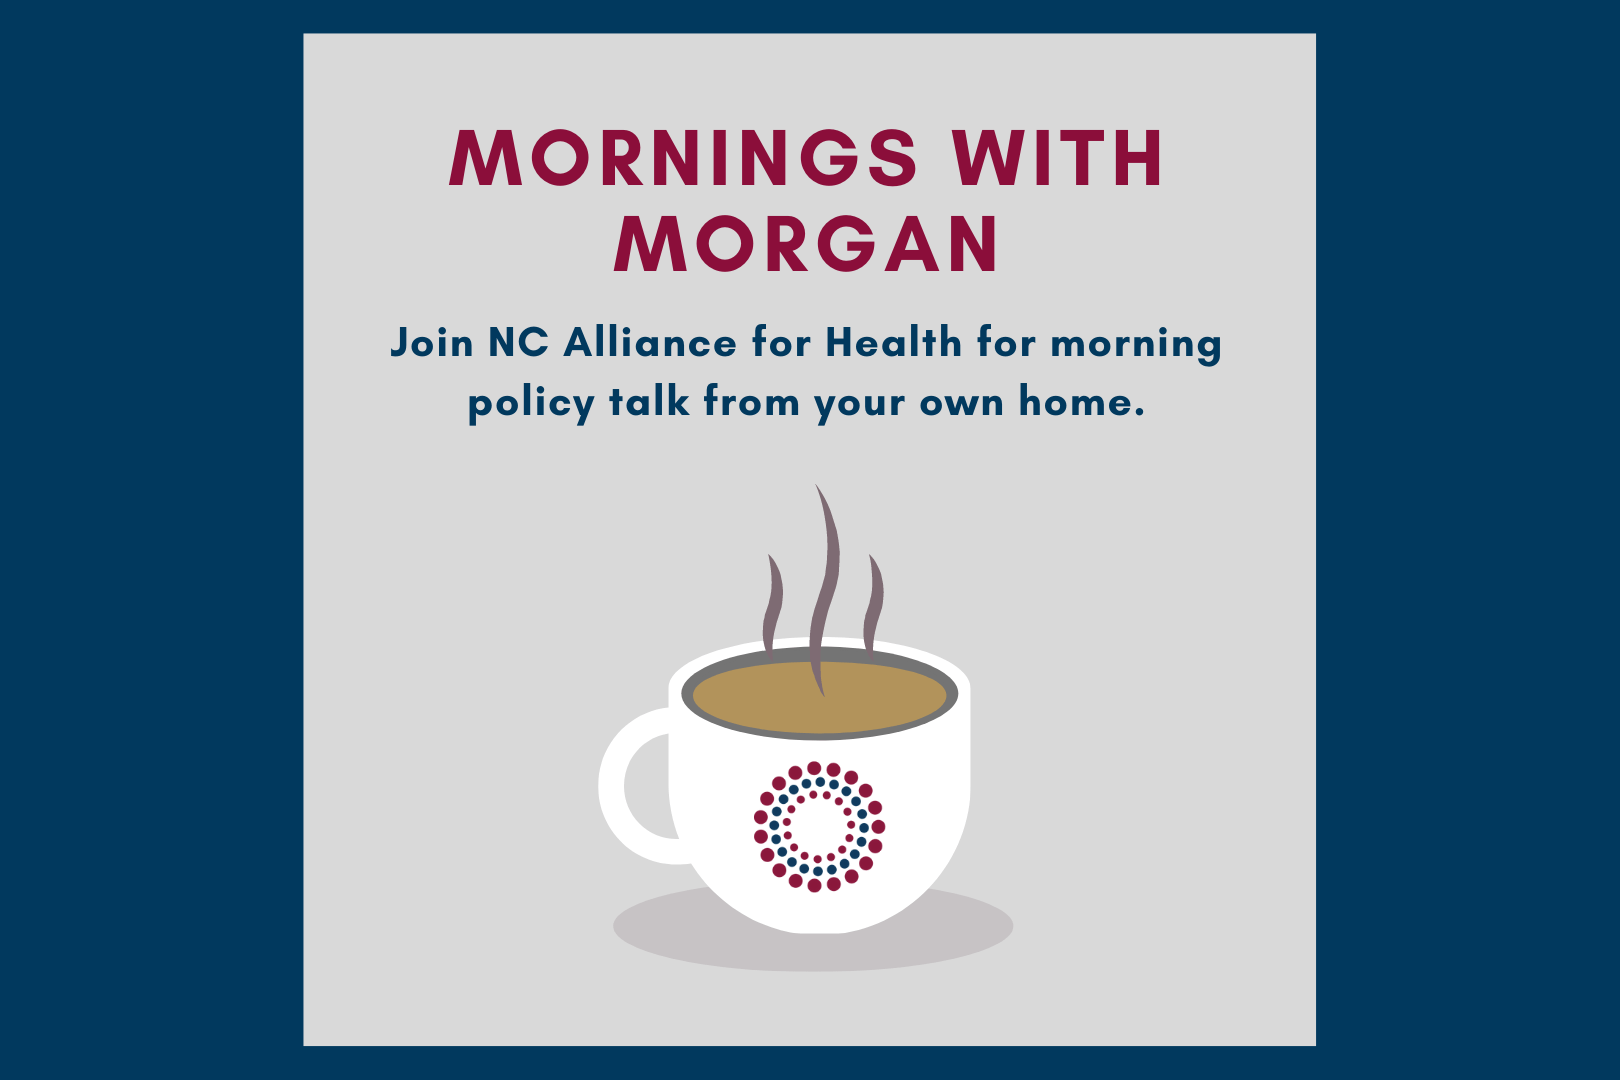 Mornings with Morgan featured image with coffee cup logo